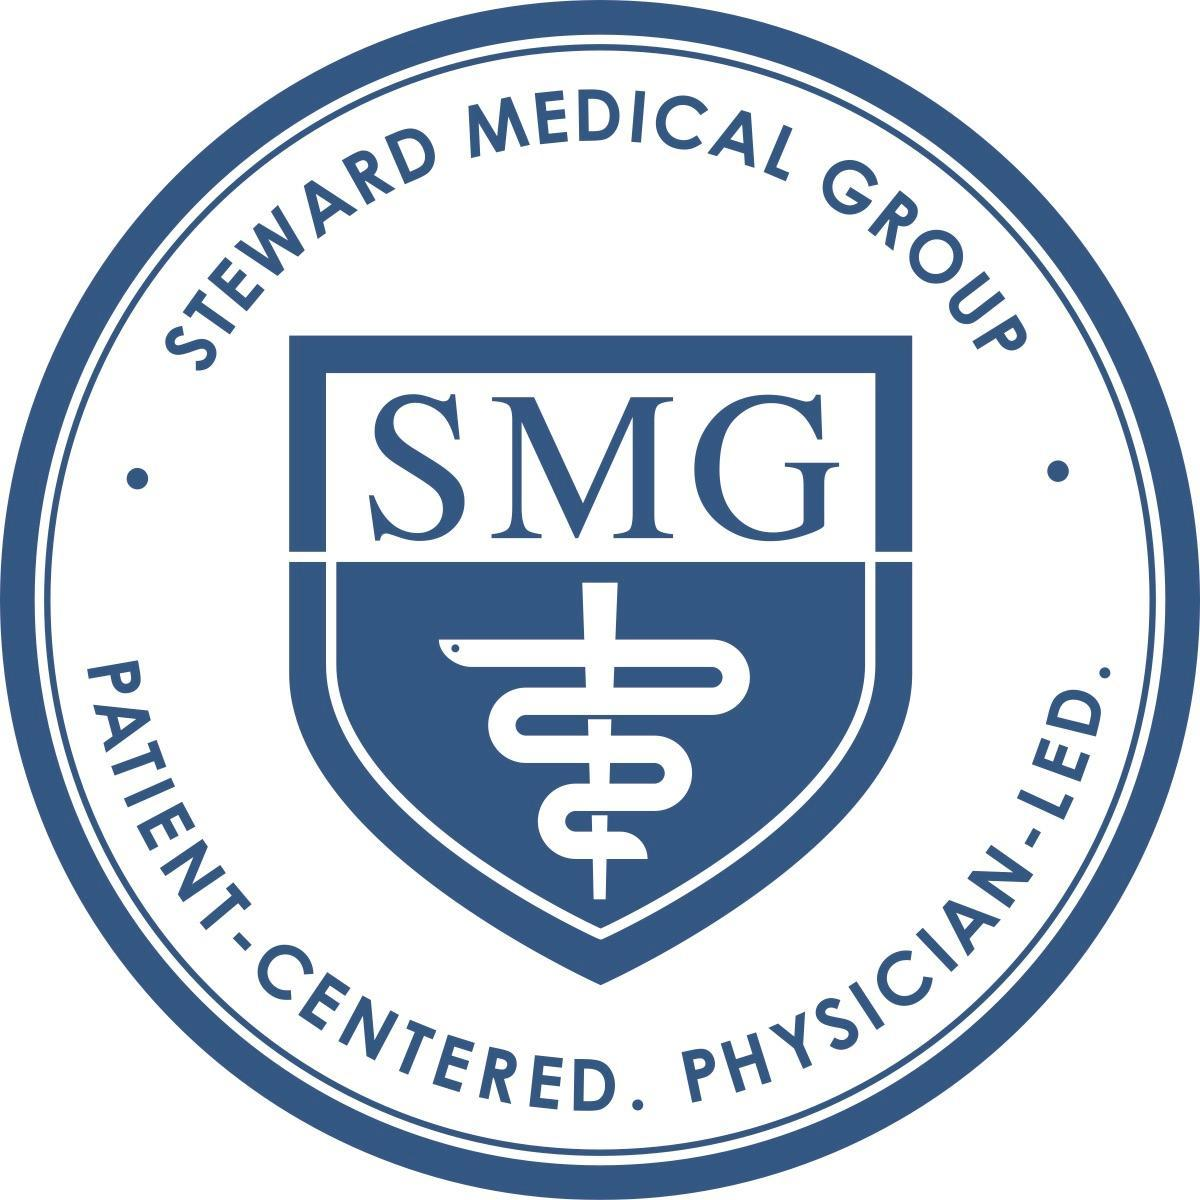 SMG Addiction Medicine at St. Elizabeth's Medical Center